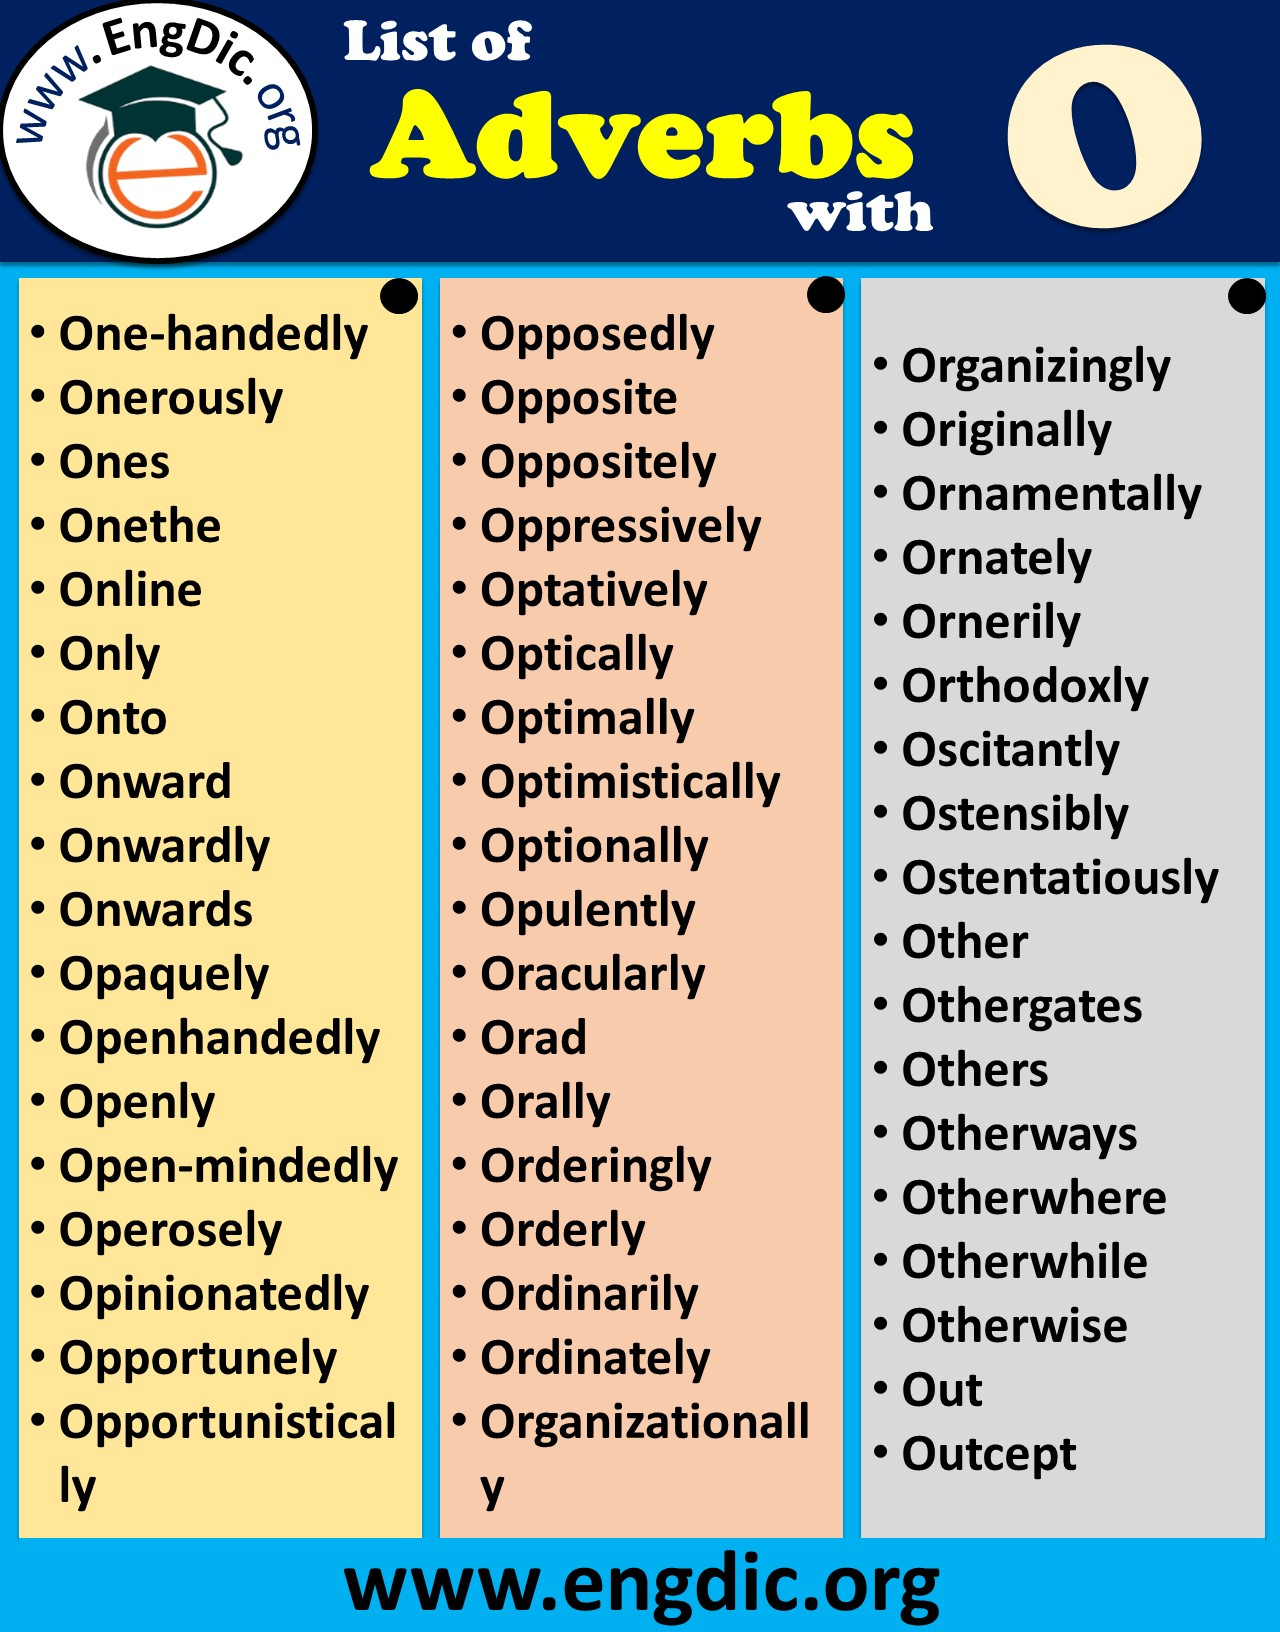 adverbs starting with o